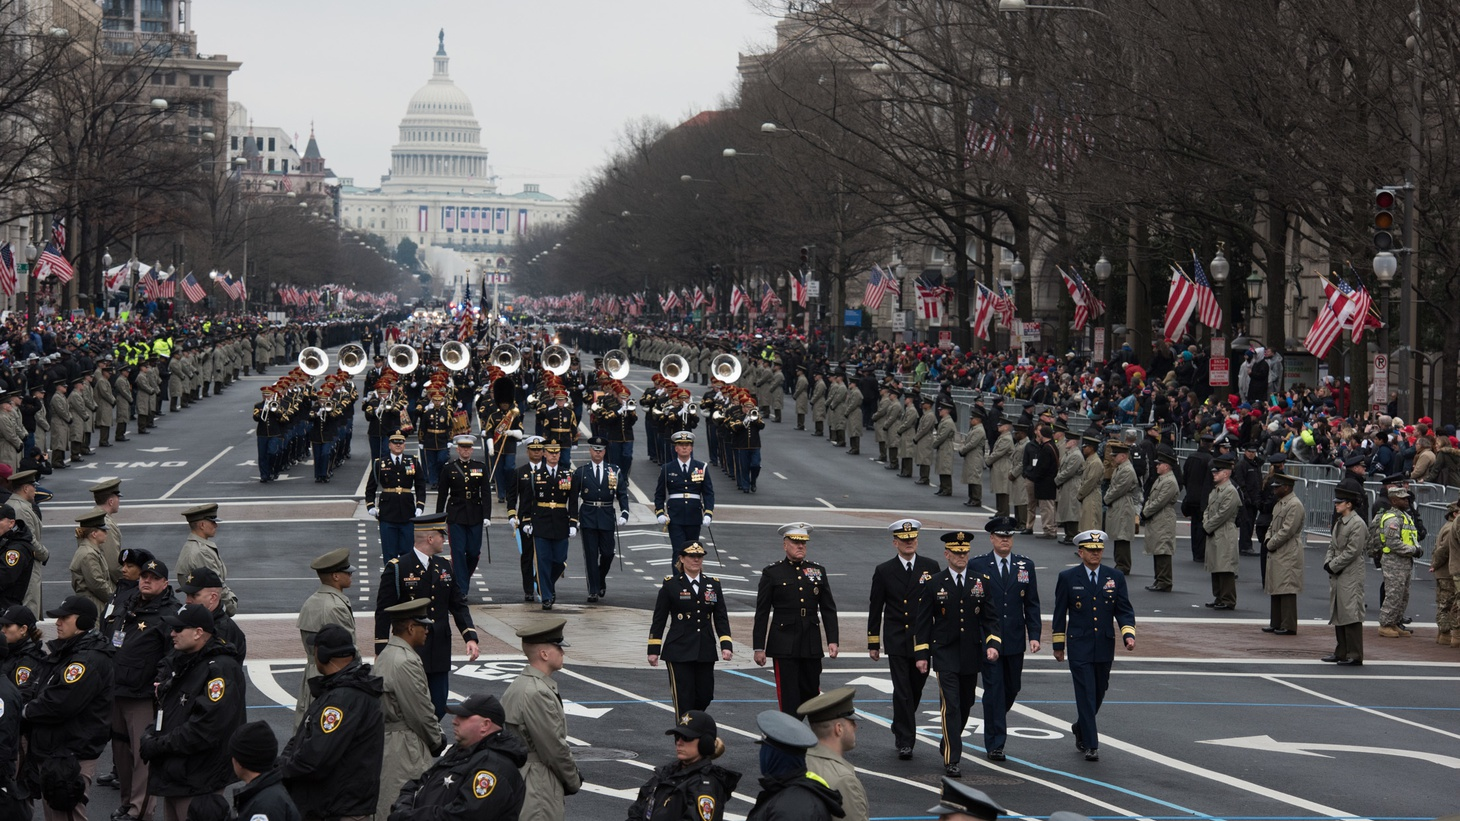 U.S. Servicemembers march down Pennsylvania Avenue during the Presidential Inaugural Parade in Washington D.C., January 20, 2017.